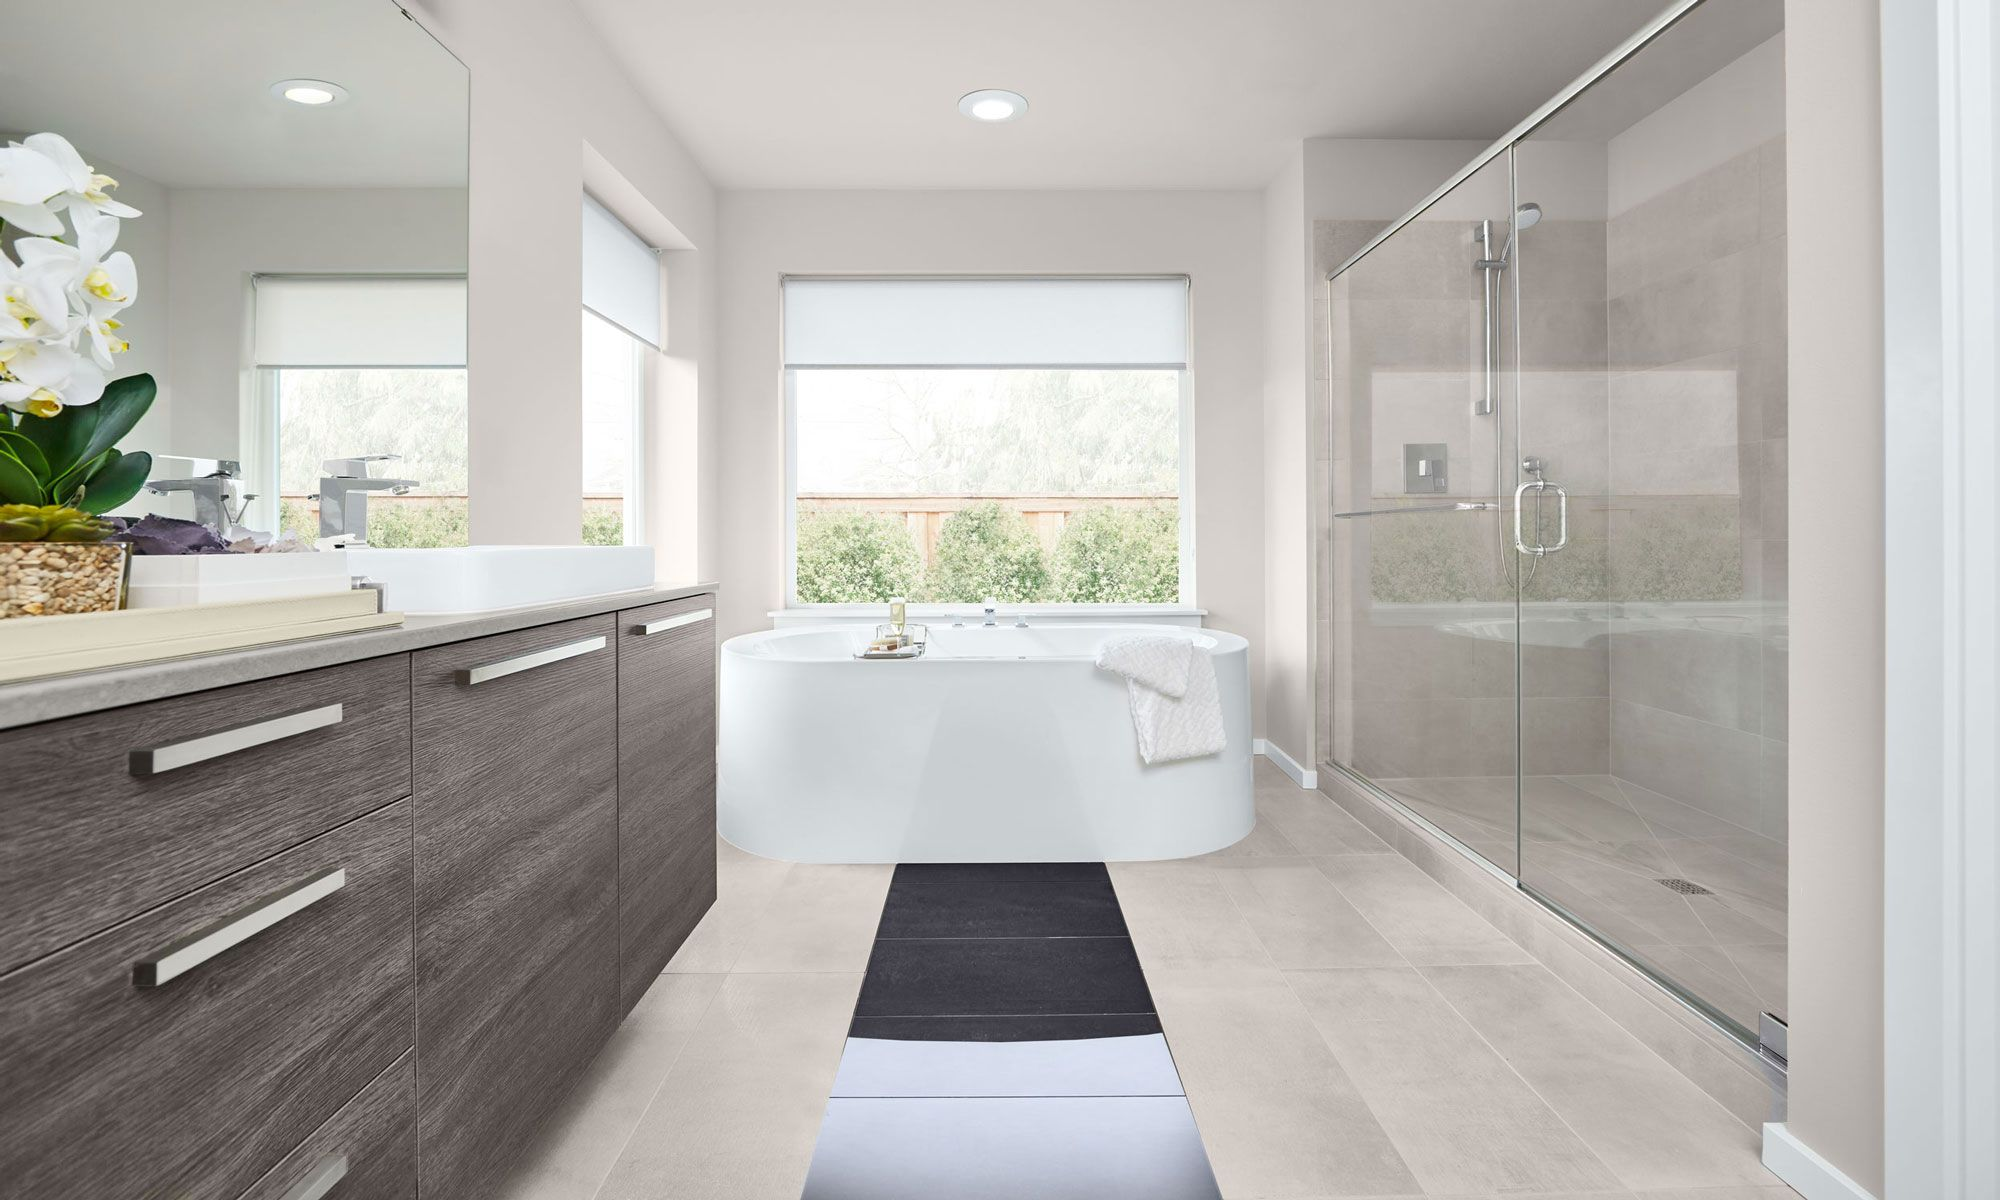 Bathroom featured in the Avoca By MainVue Homes in Bremerton, WA